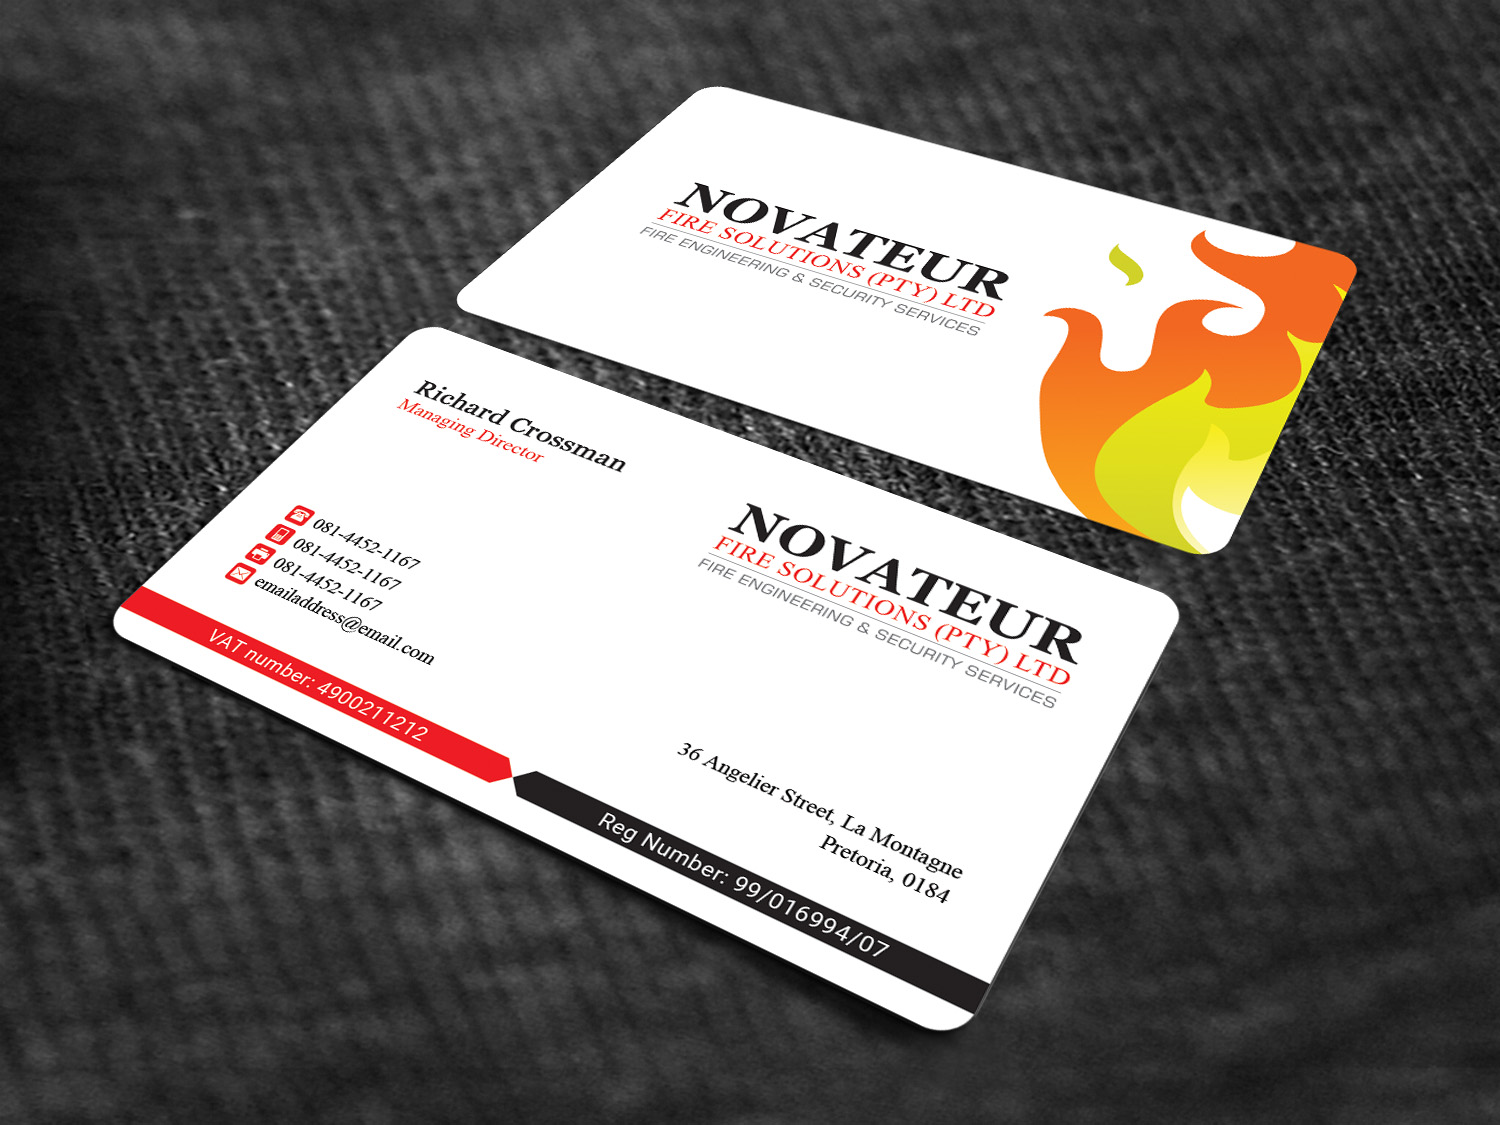 Professional serious fire safety business card design for business card design by sandaruwan for novateur fire solutions design 15708006 reheart Image collections